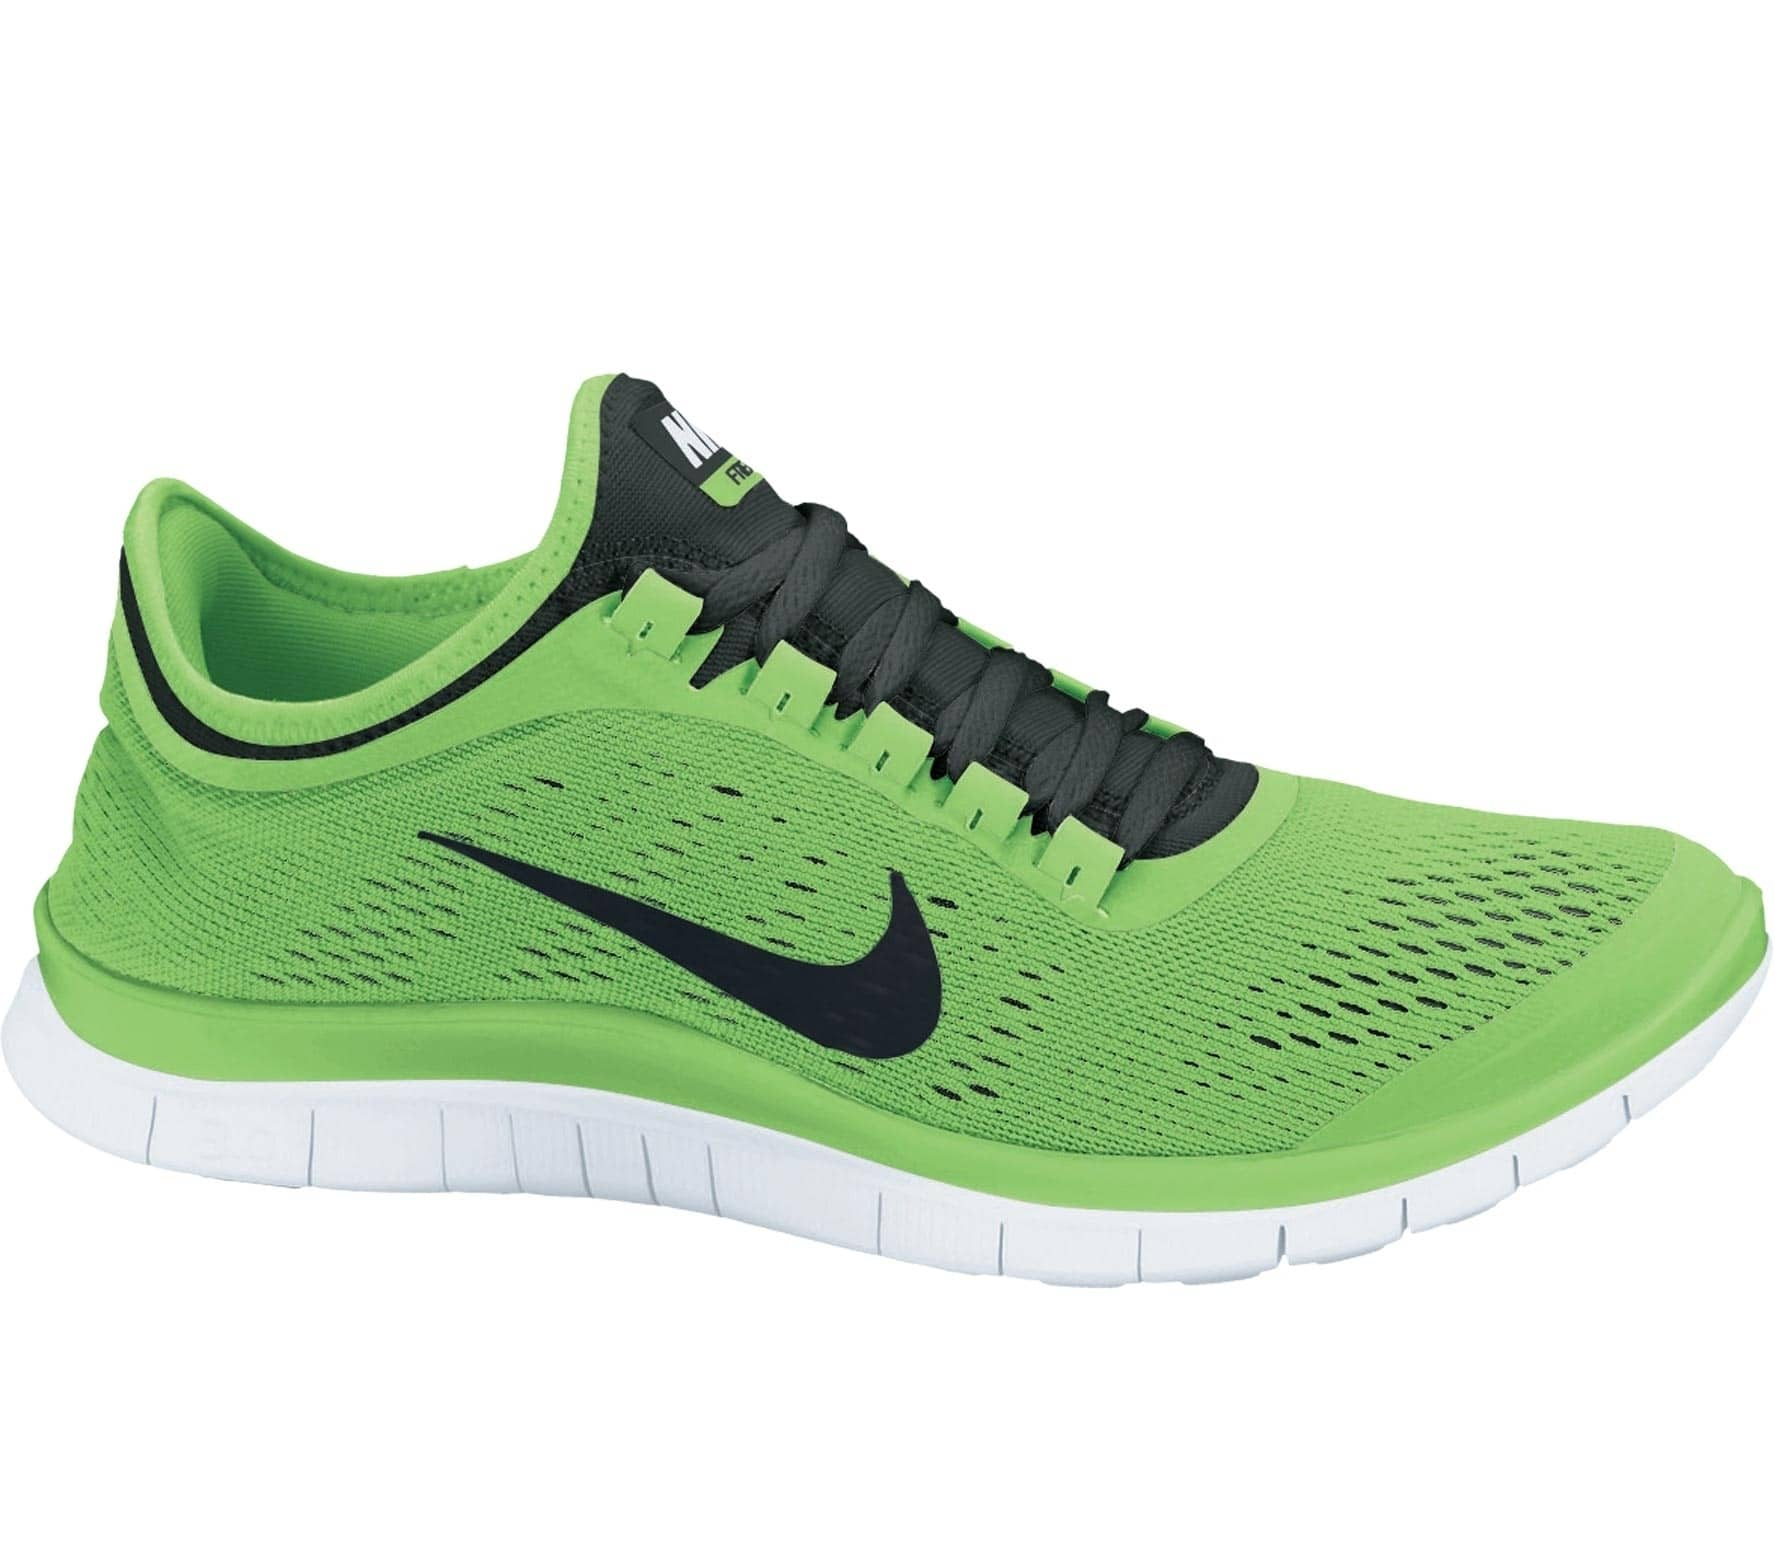 56a1a7a49768 Nike - Free 3.0 V5 men s running shoes (gr - buy it at the Keller ...